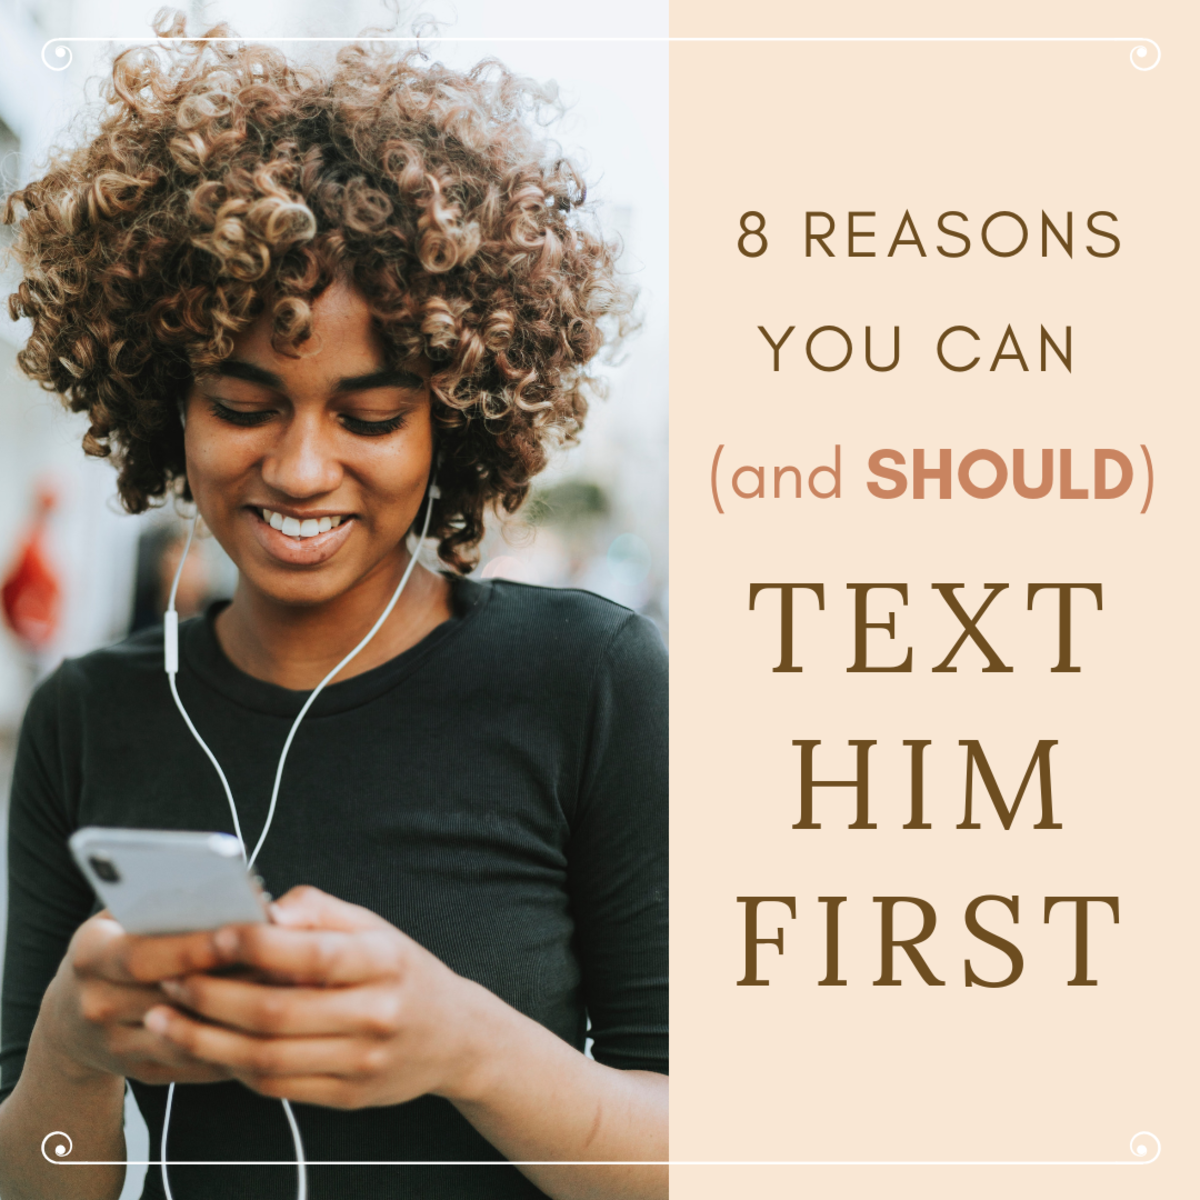 Should I Text Him First? 8 Reasons You Should Make the First Move